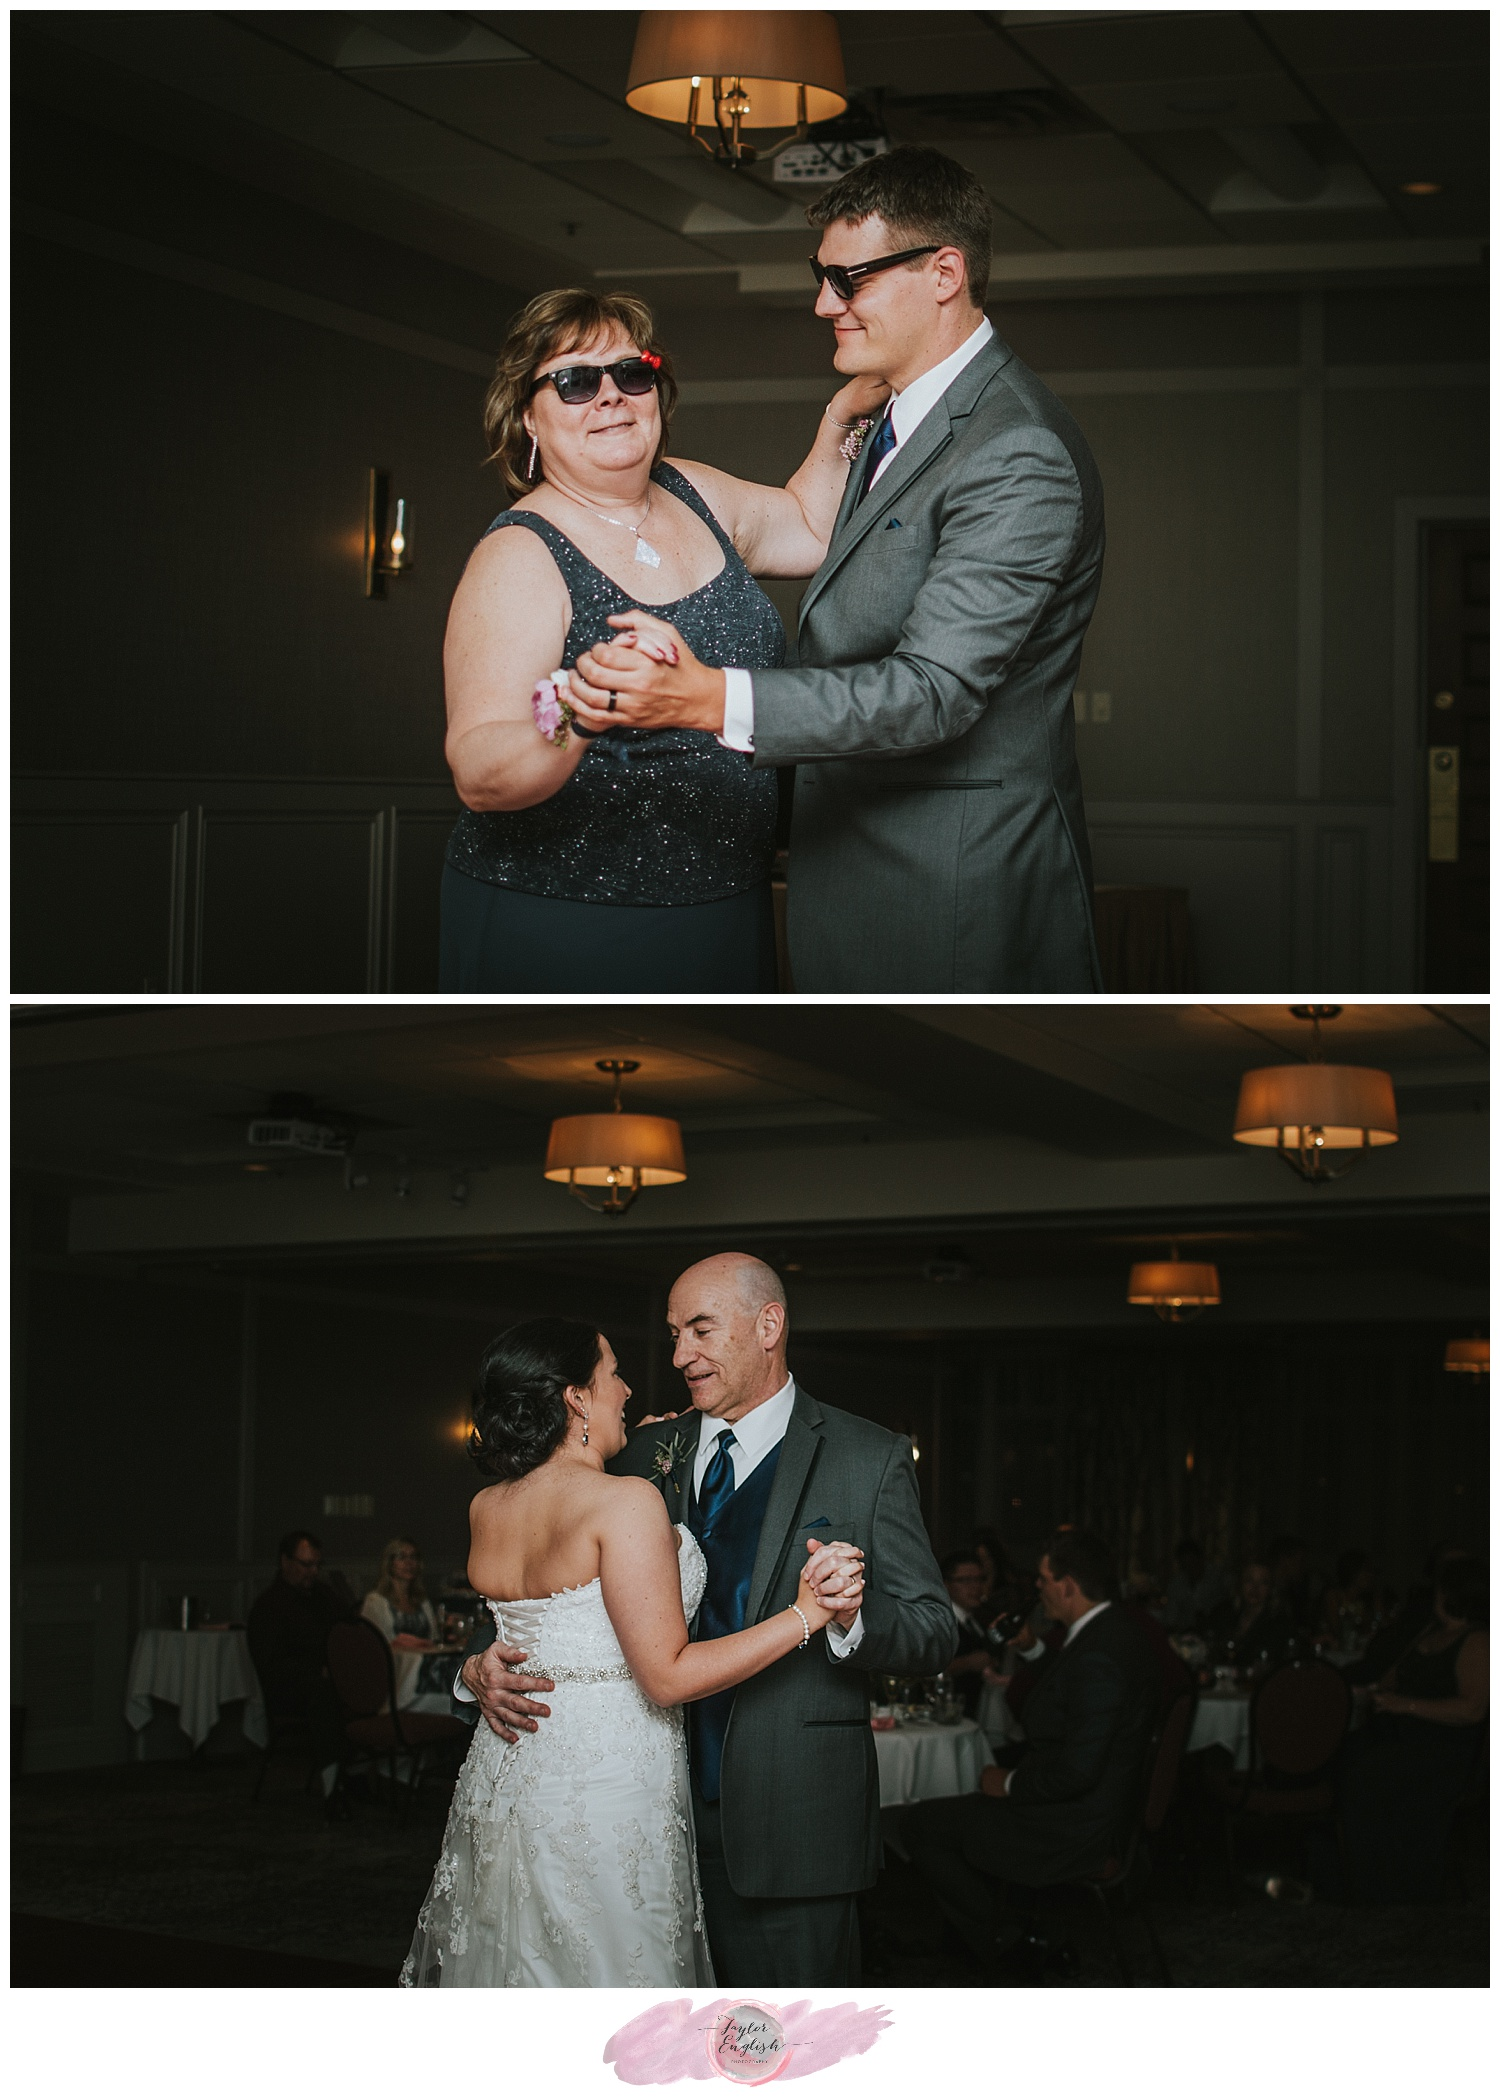 The groom and his mother choreographed a fun dance together